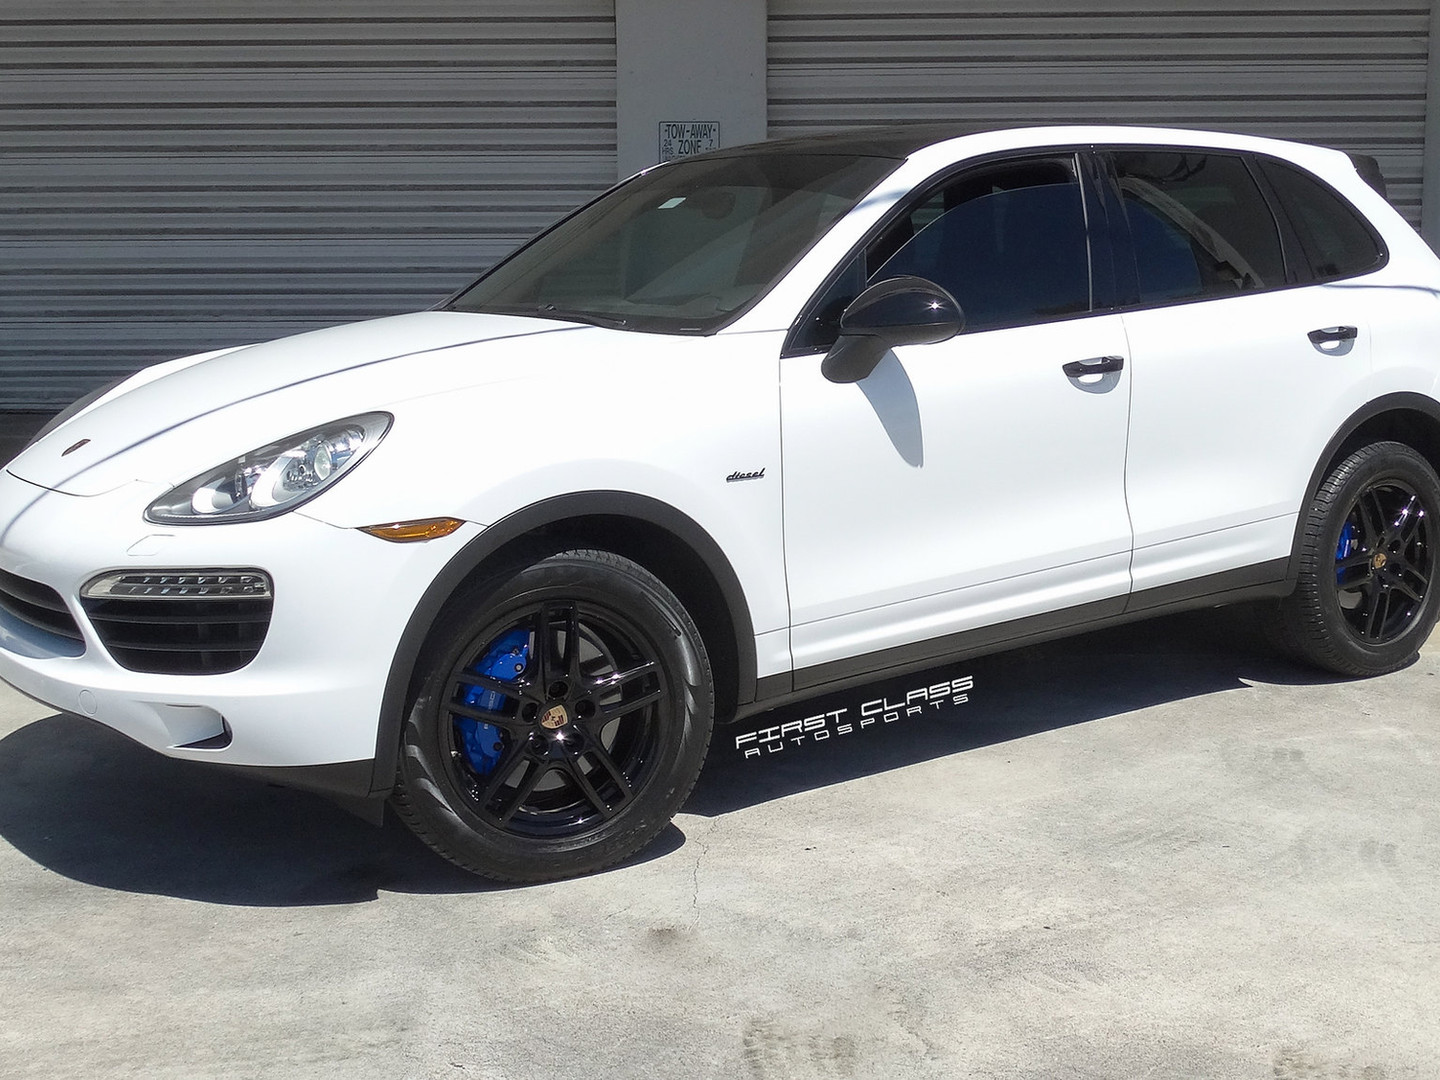 Porsche Cayenne Miami car wraps